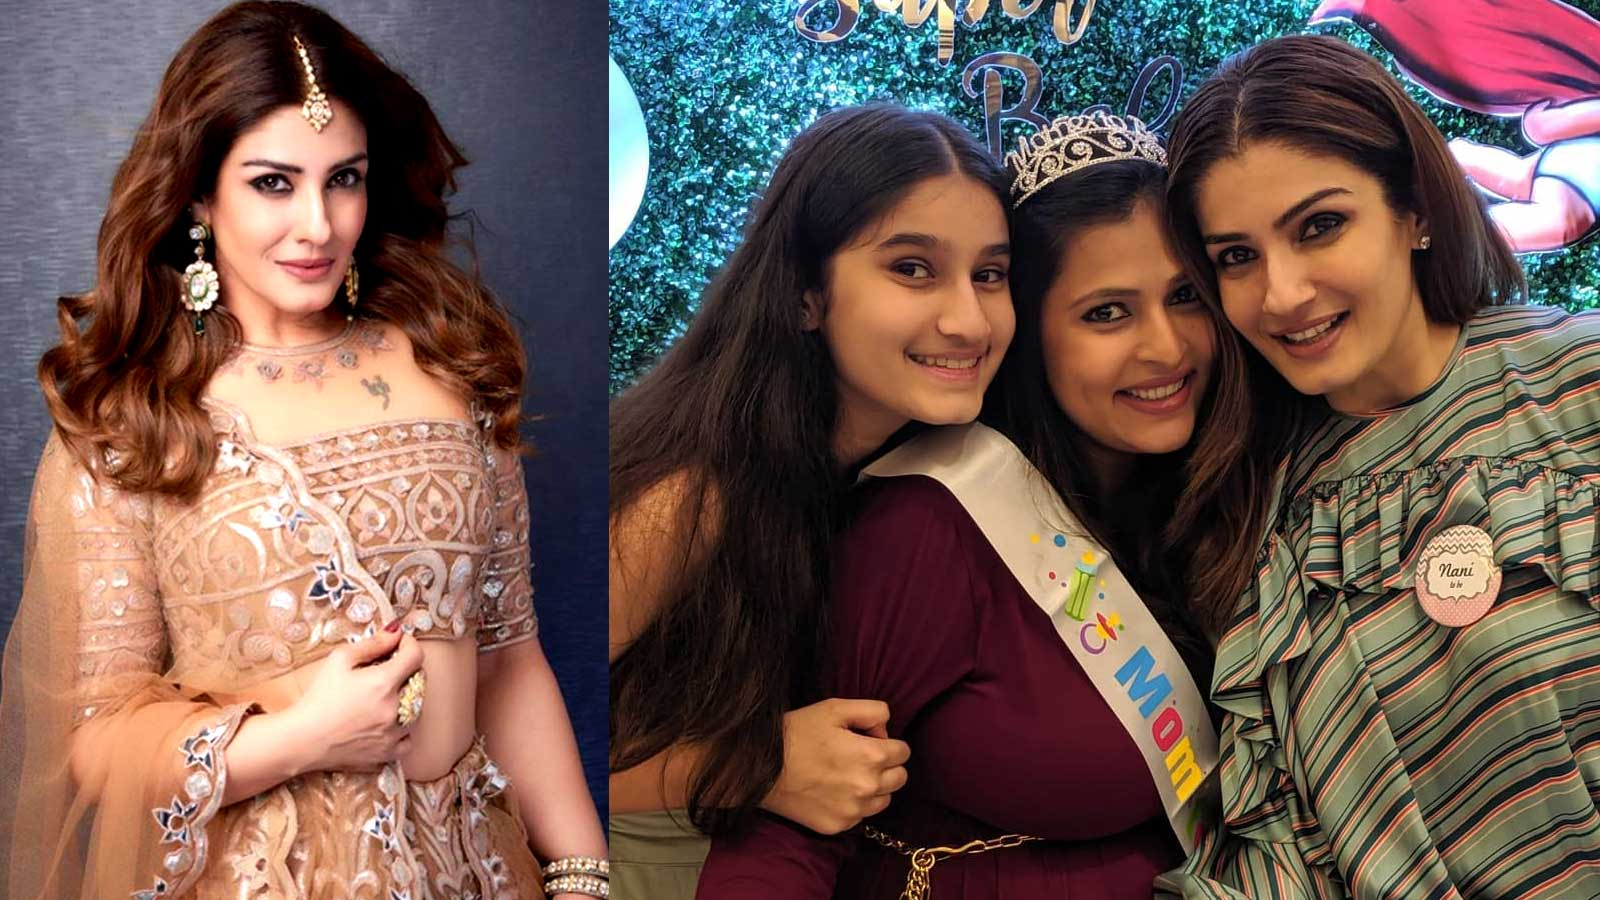 Raveena Tandon to become 'Nani' soon, hosts baby shower for daughter Chhaya